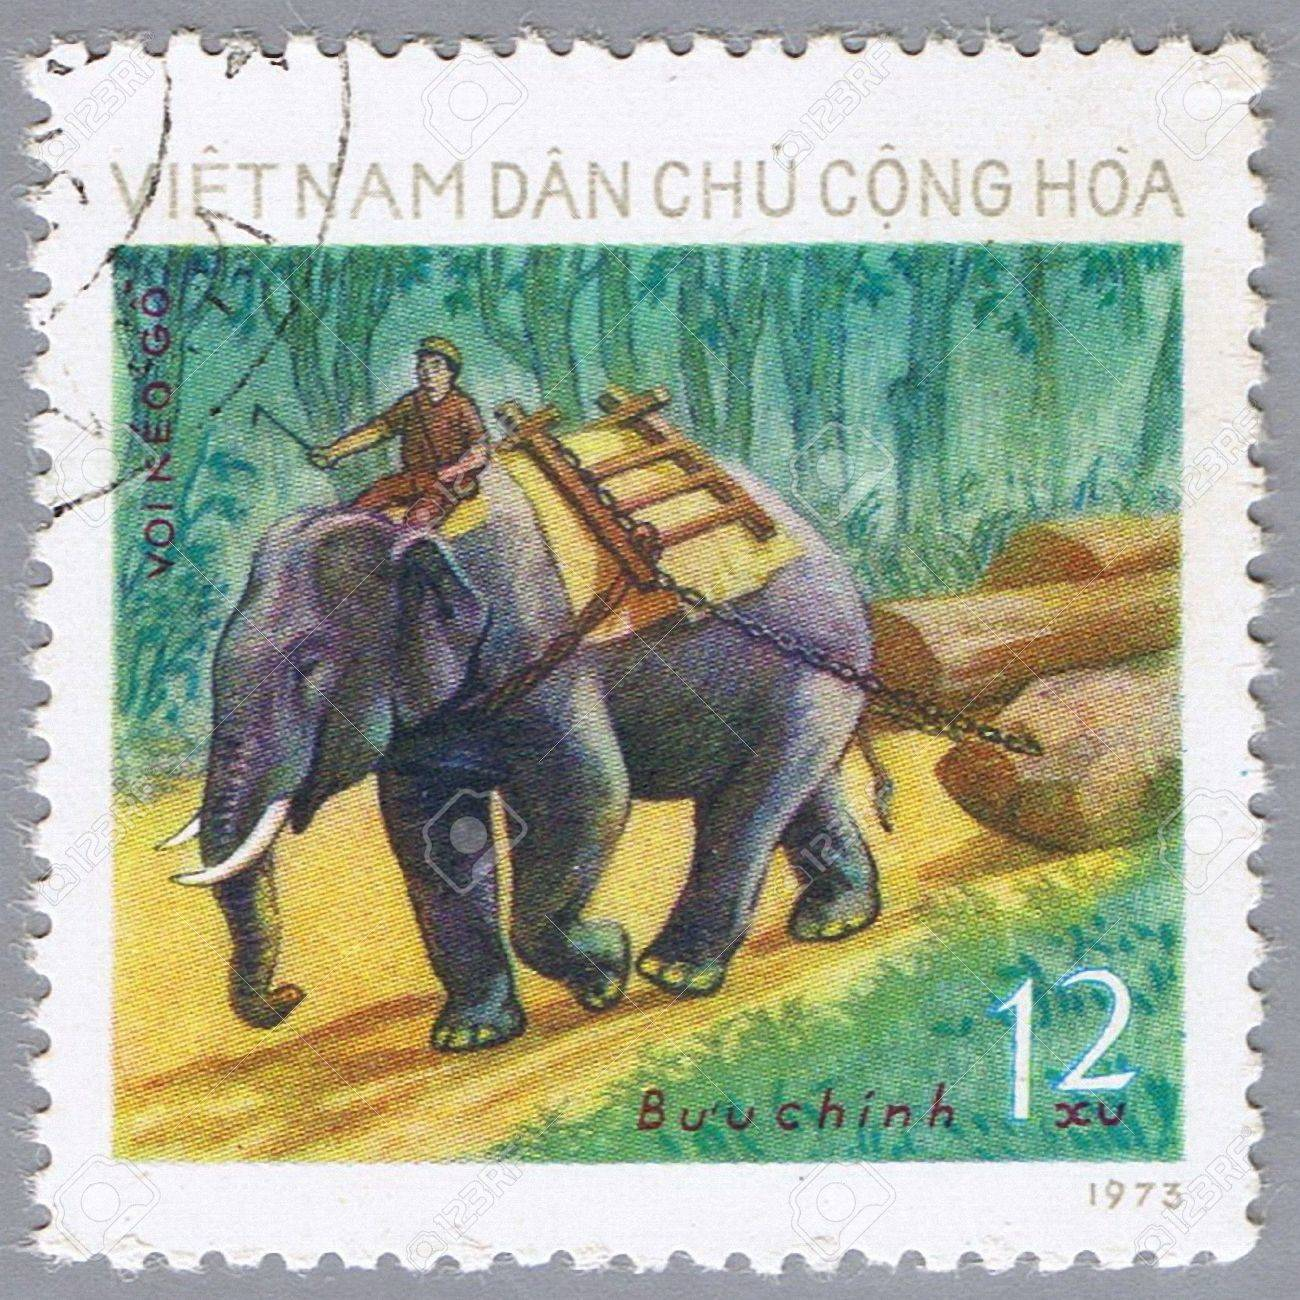 VIETNAM - CIRCA 1973: A stamp printed in Vietnam shows image of an elephant, series, circa 1973 Stock Photo - 7953509